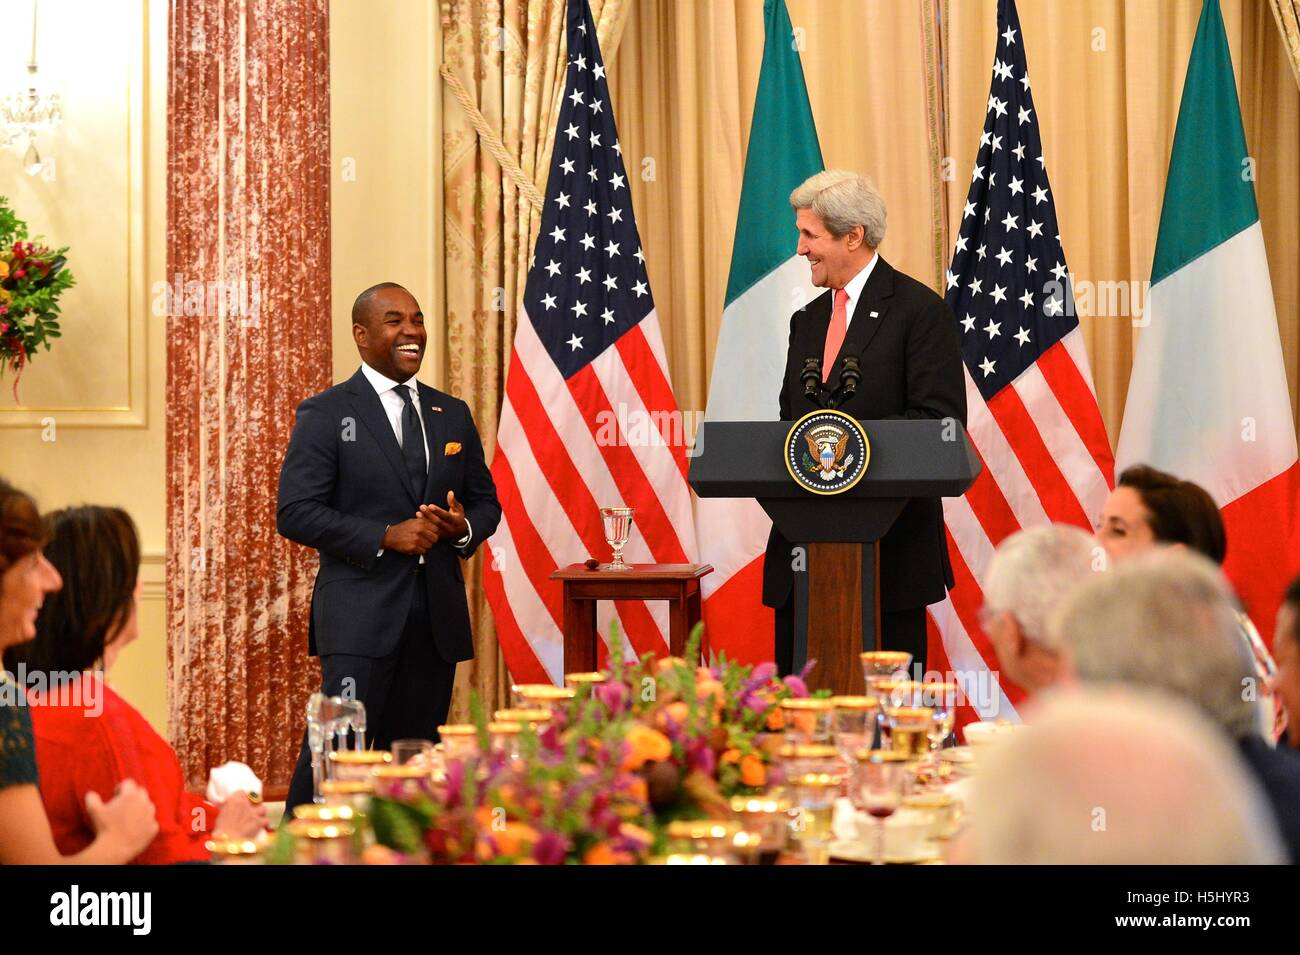 U.S. Secretary of State John Kerry applauds opera singer Lawrence Brownlee after his performance at the State Luncheon - Stock Image